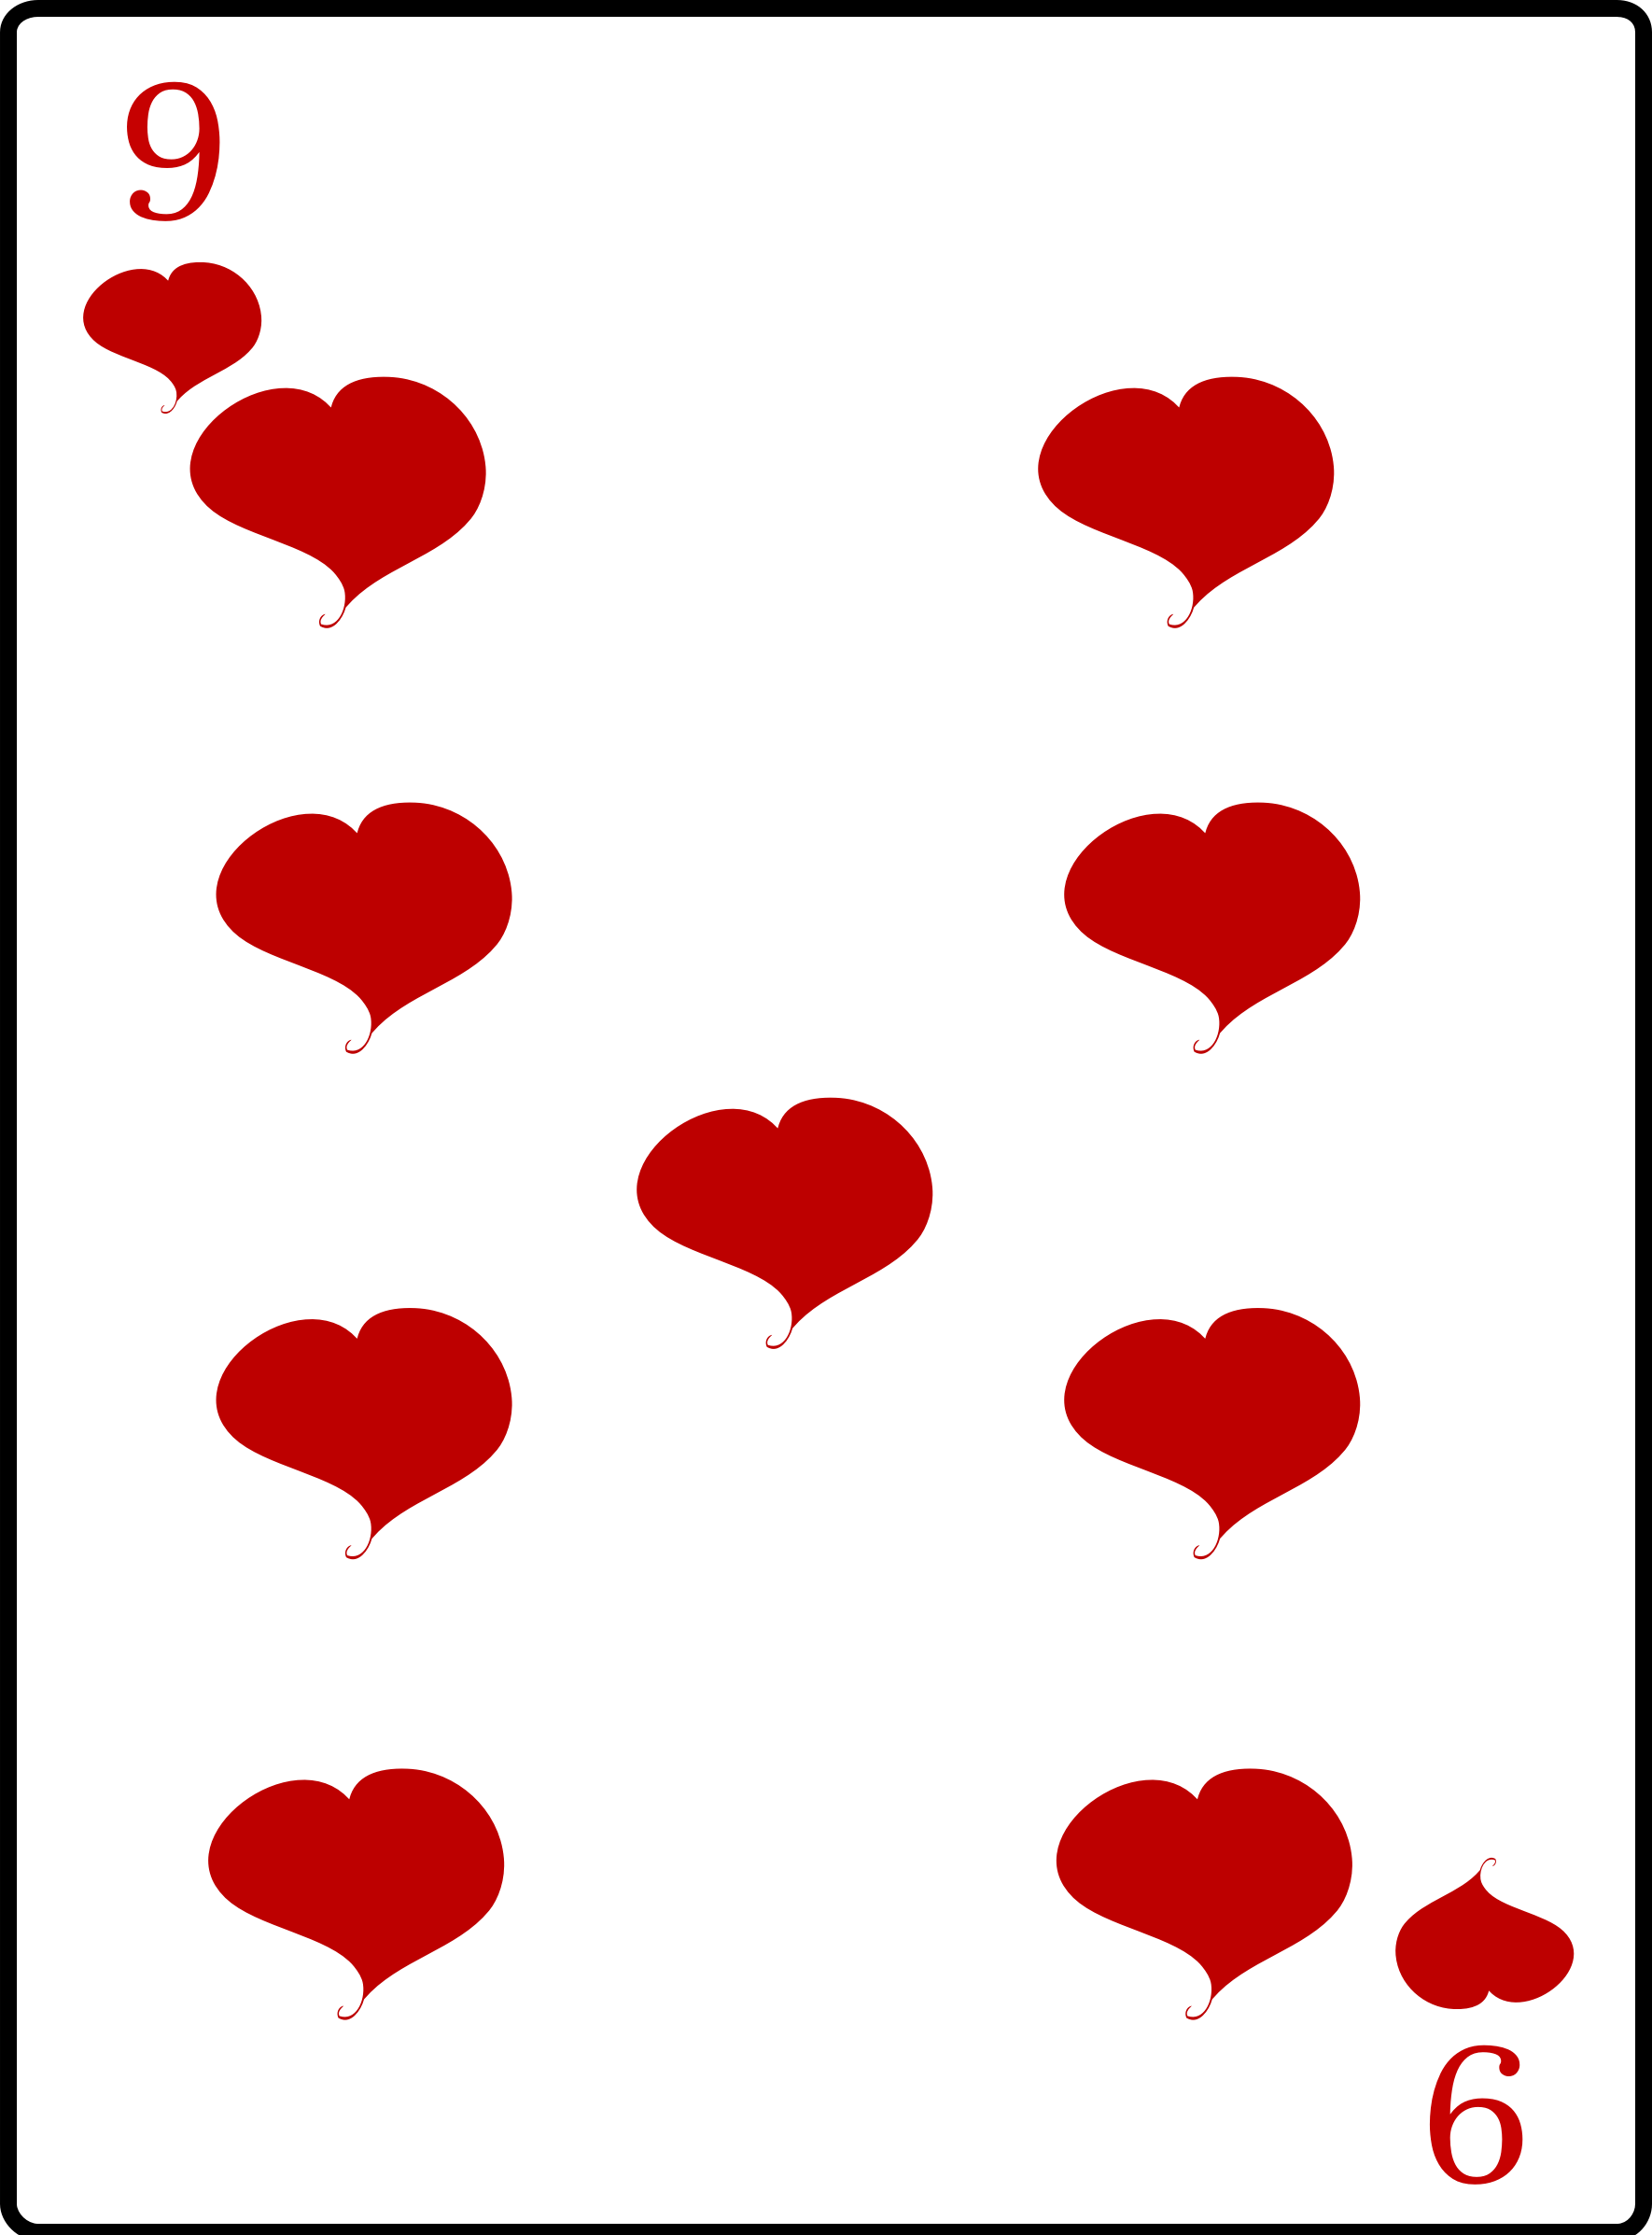 9 of Hearts by casino